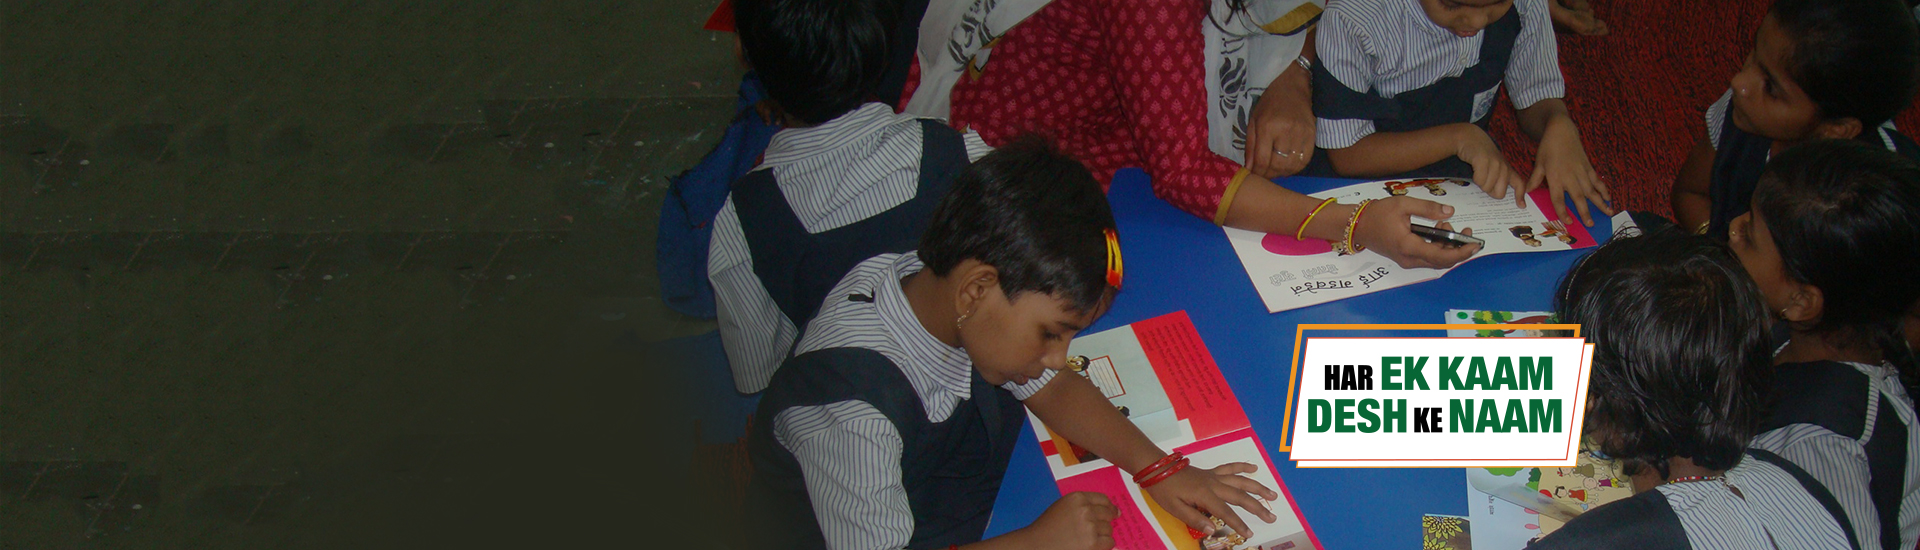 More than 8 lakh children educated through our various CSR programs